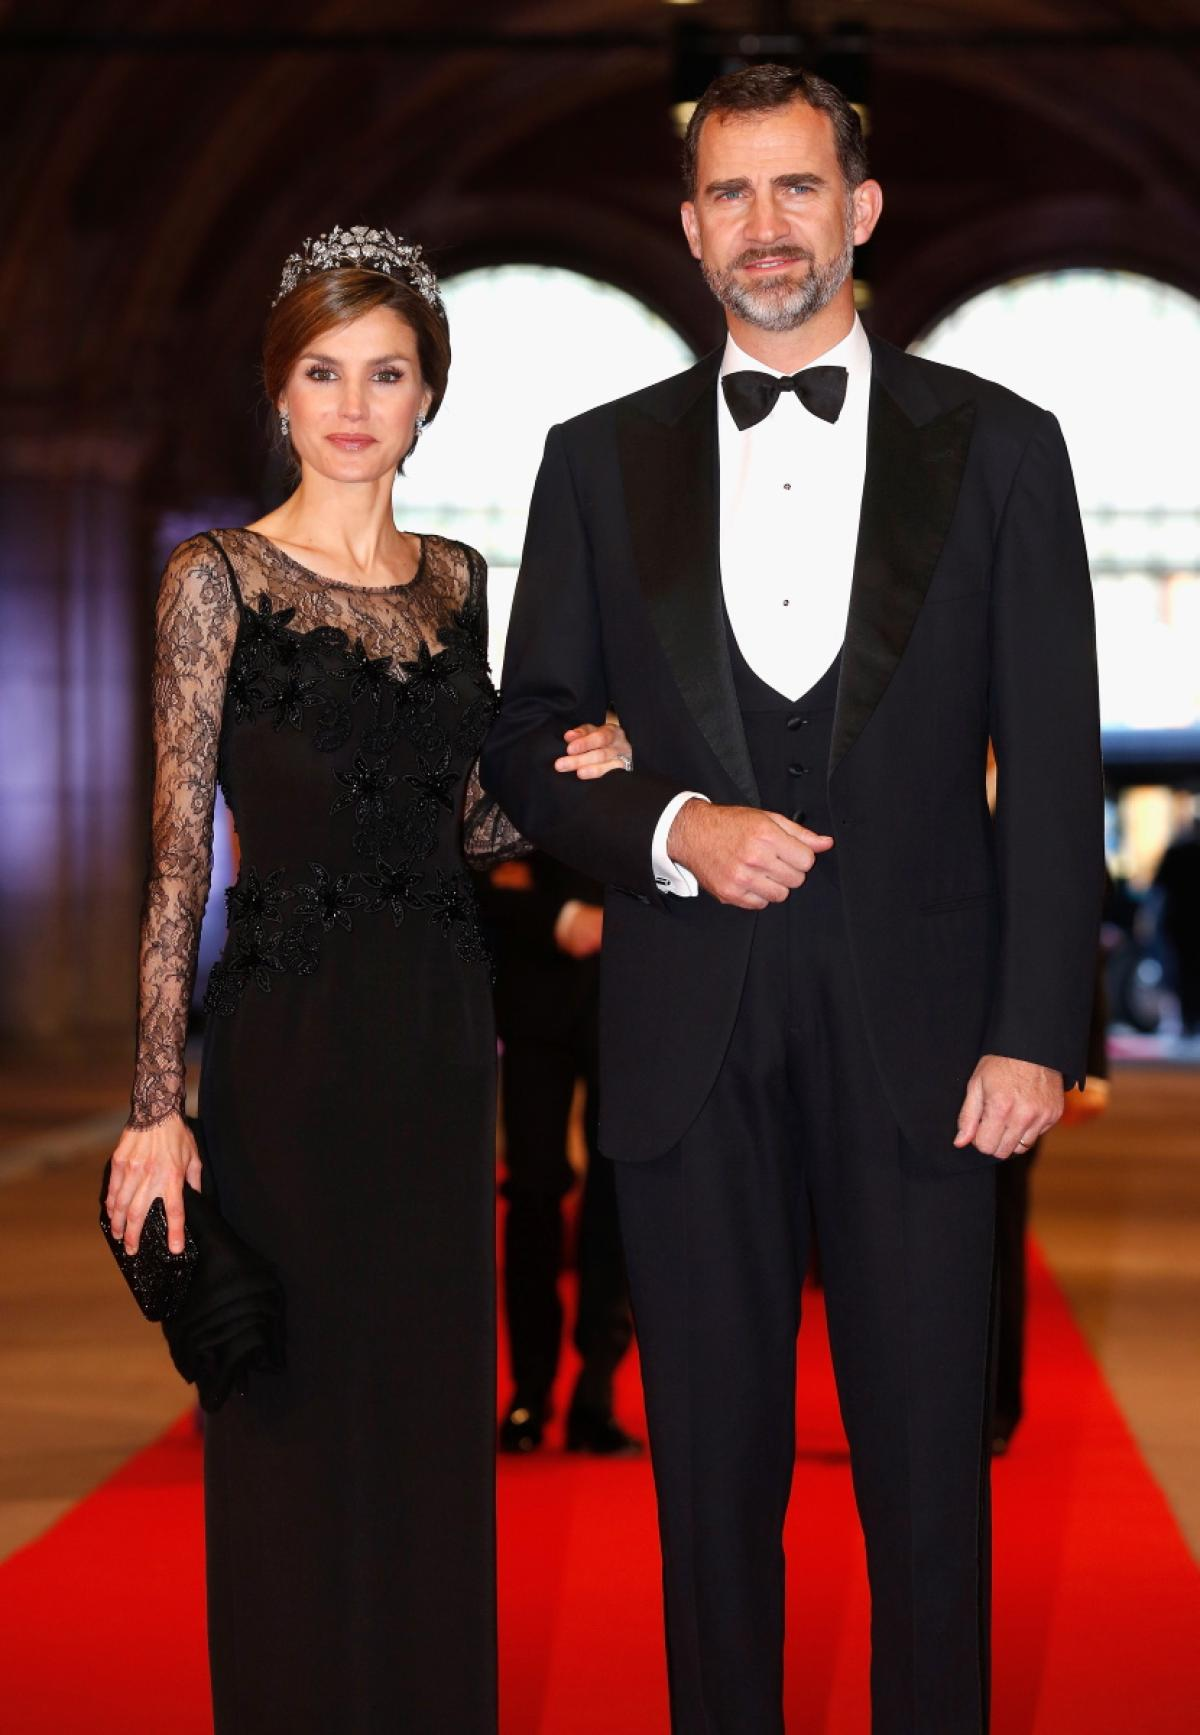 Queen Letizia of Spain | fashionmommy\'s Blog